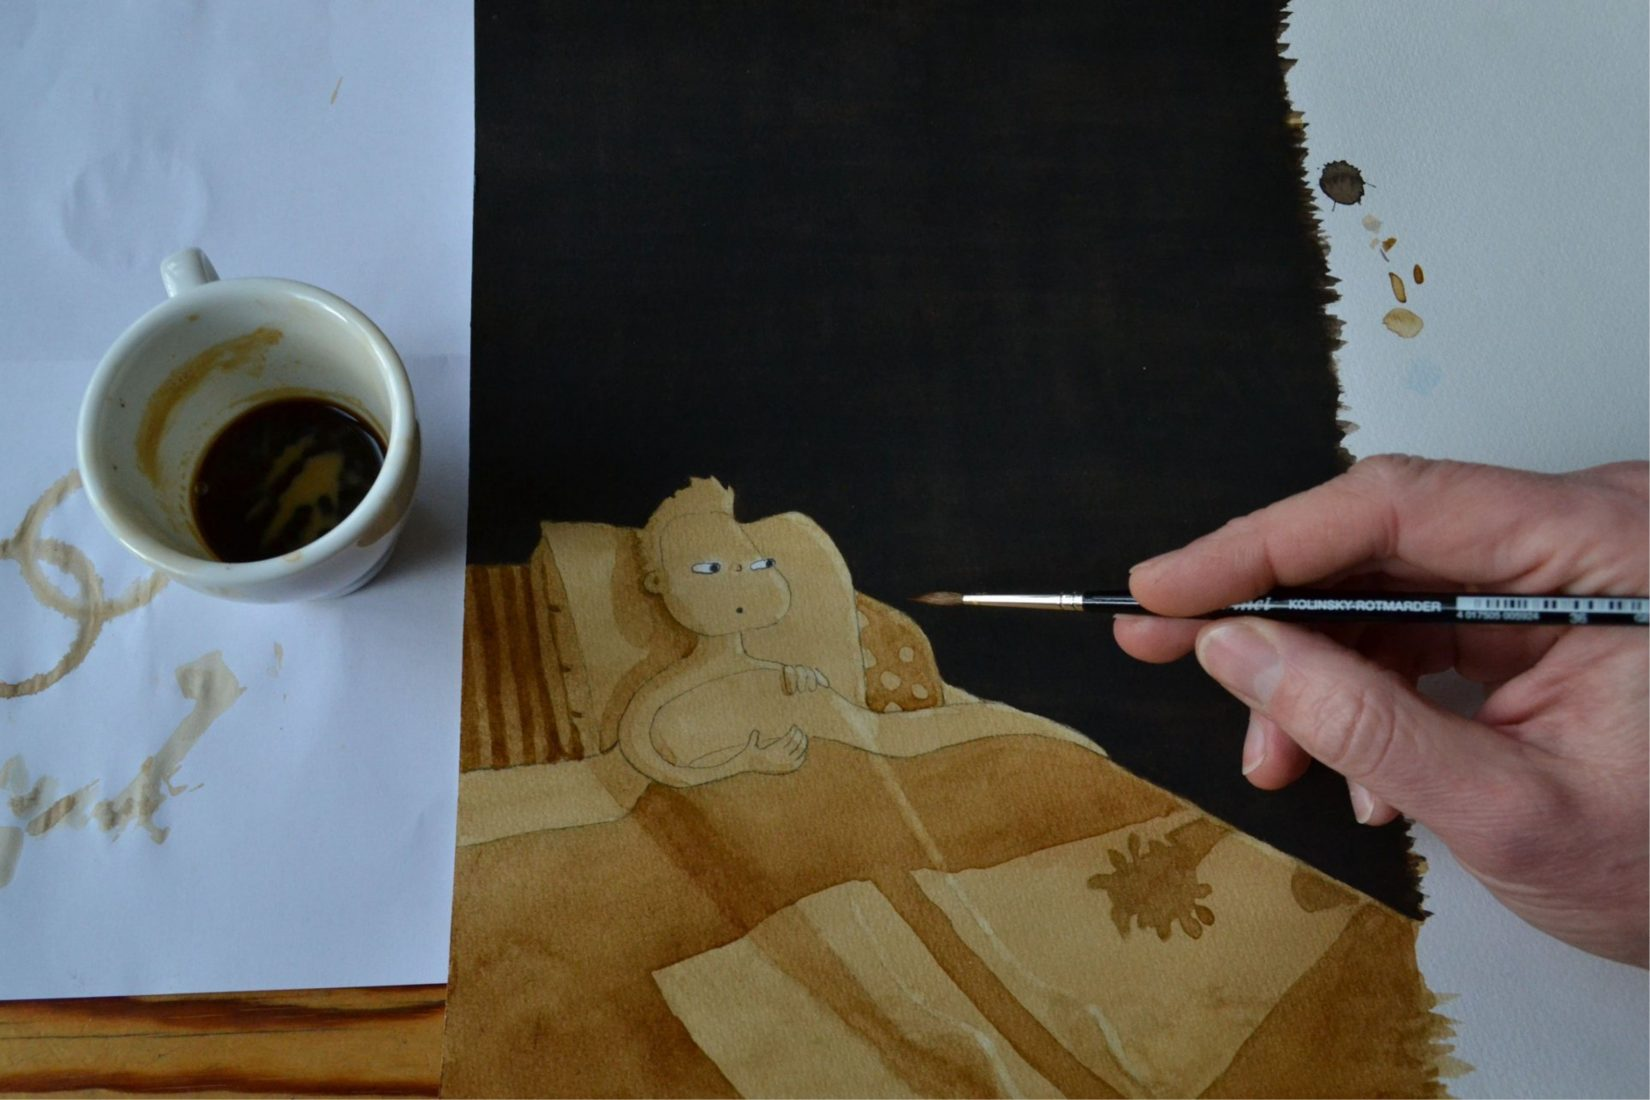 Painting with coffee of a little character in bed.